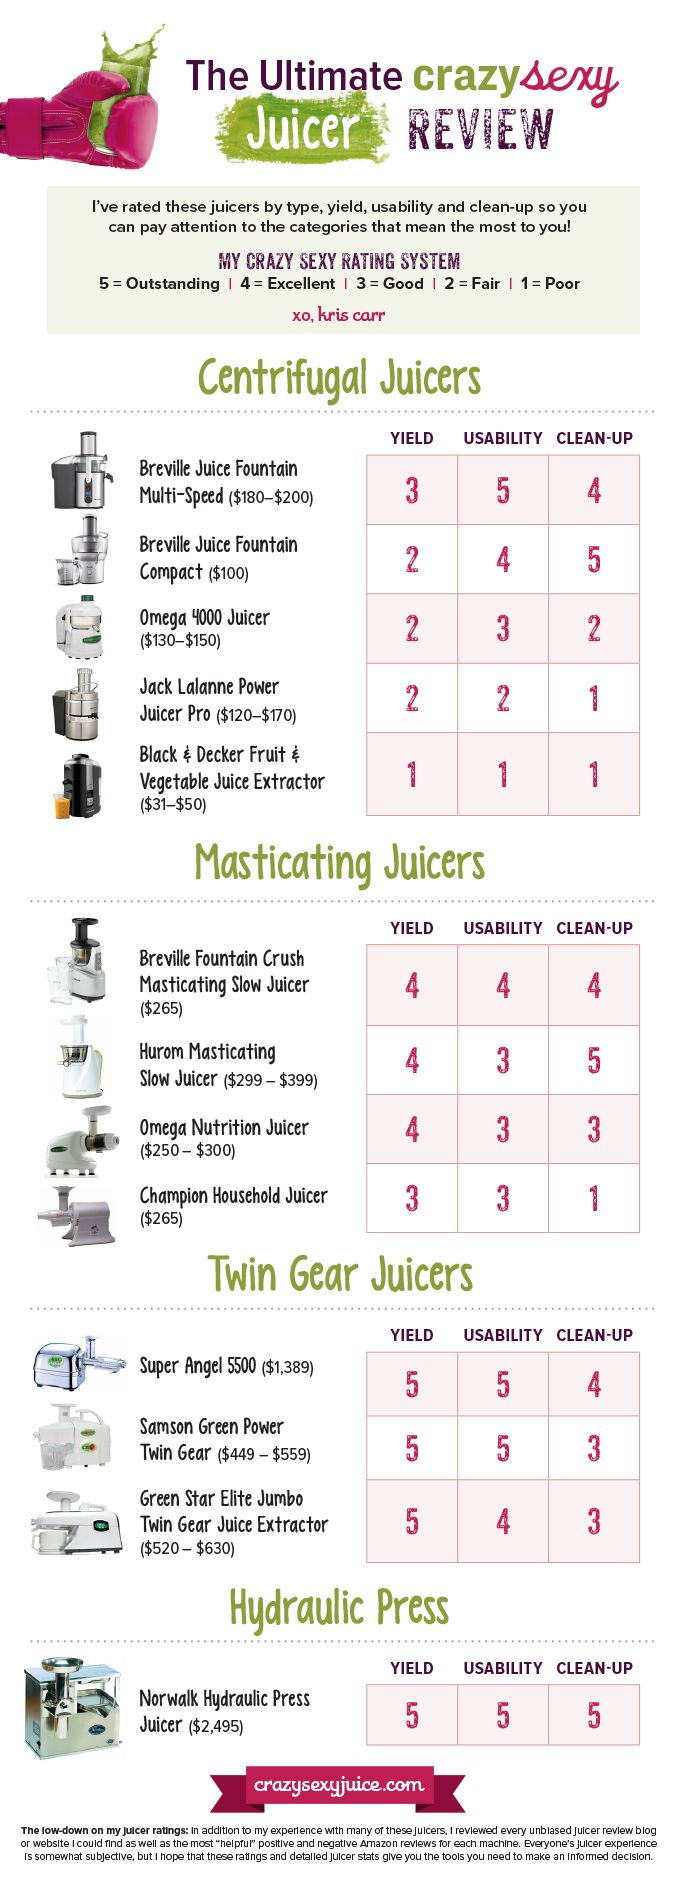 Best Juicer to Buy: A Crazy Sexy Review & Juicer Buying Guide